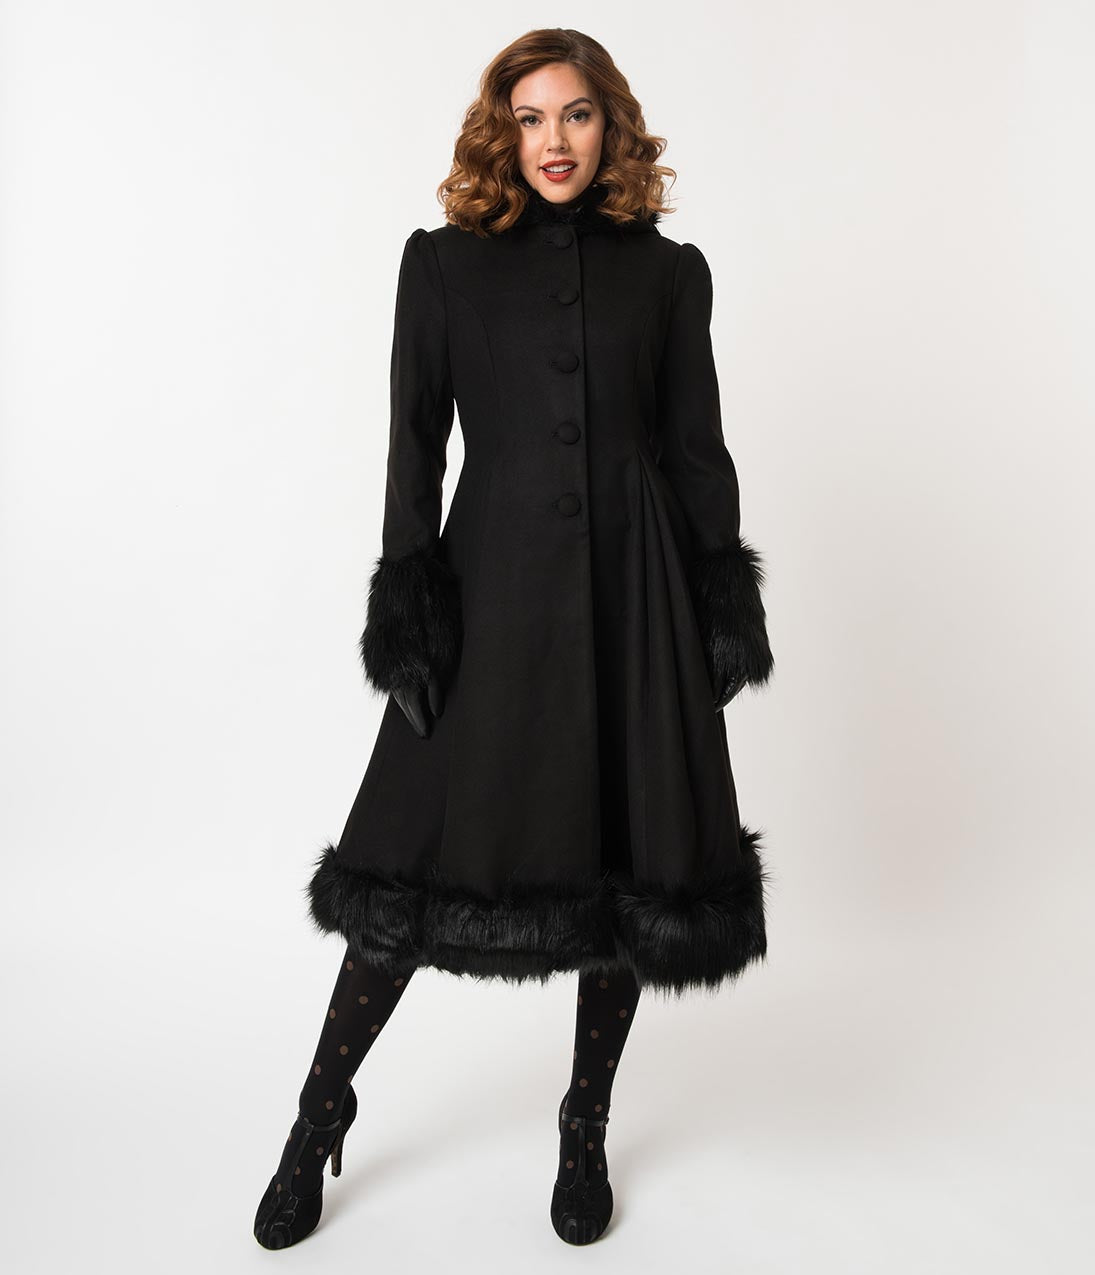 1940s Coats & Jackets Fashion History Hell Bunny Black Fur Button Up Hooded Elvira Coat $218.00 AT vintagedancer.com